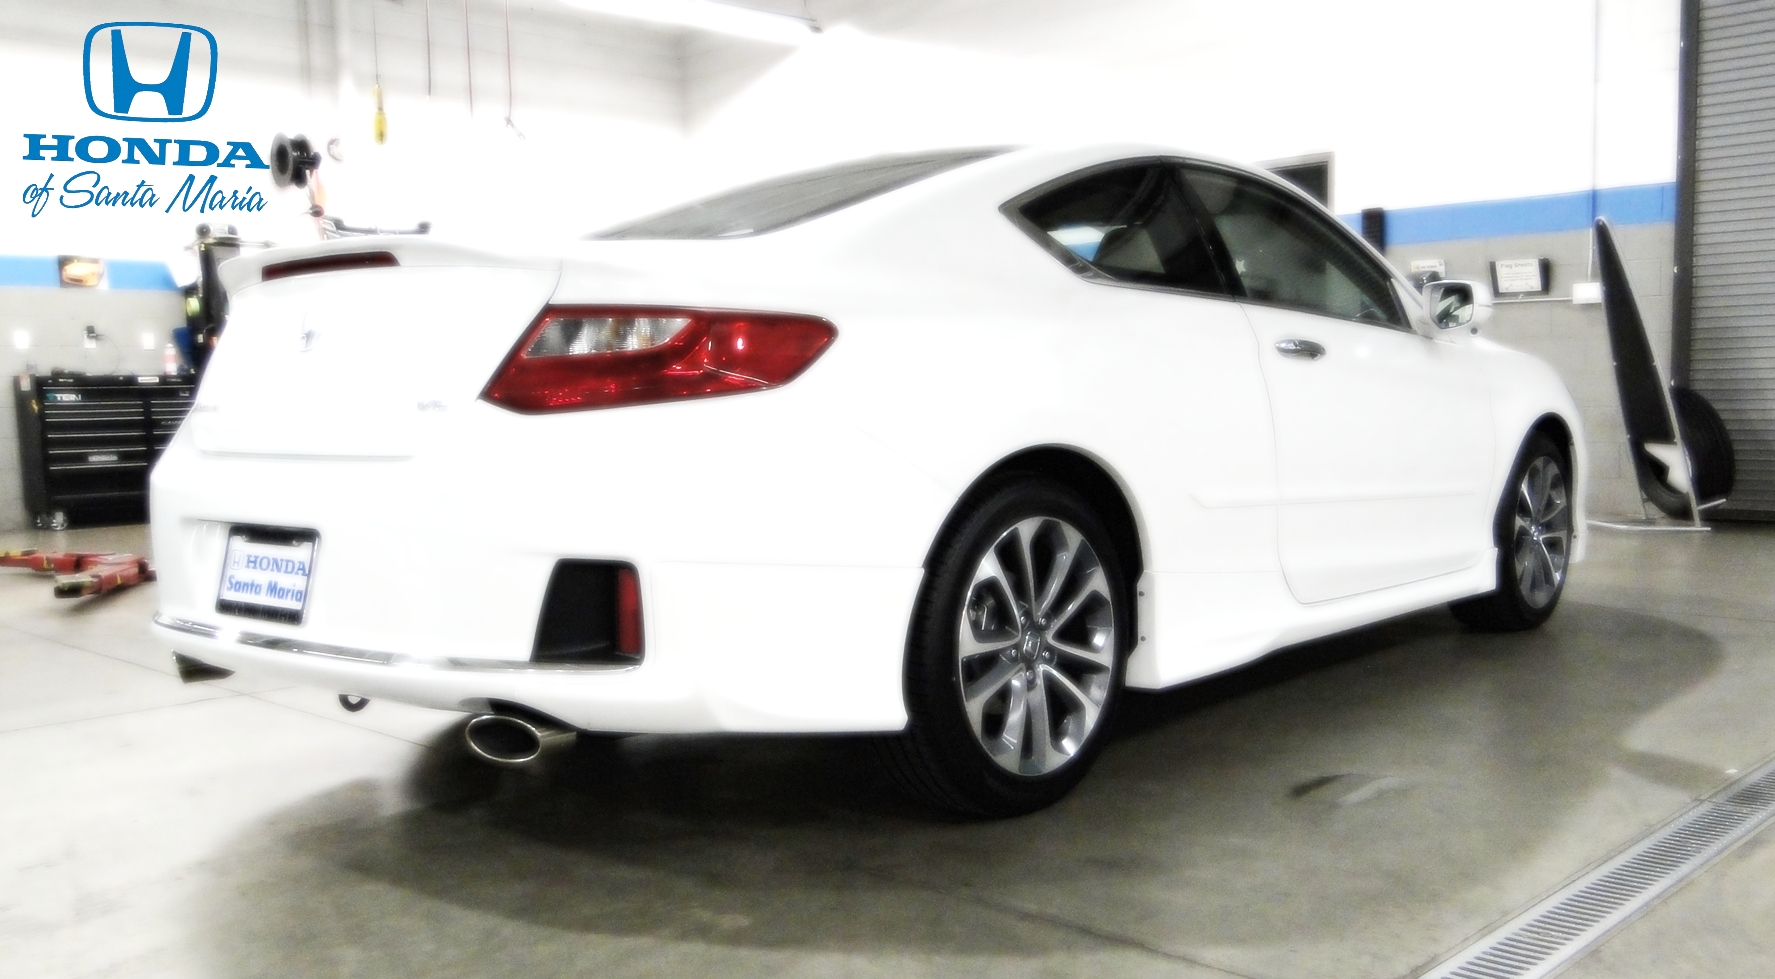 Honda Accord 2014 Coupe V6 >> 2013 Honda Accord EX-L V6 w/ Navigation + Accessories! – Your Honda Man